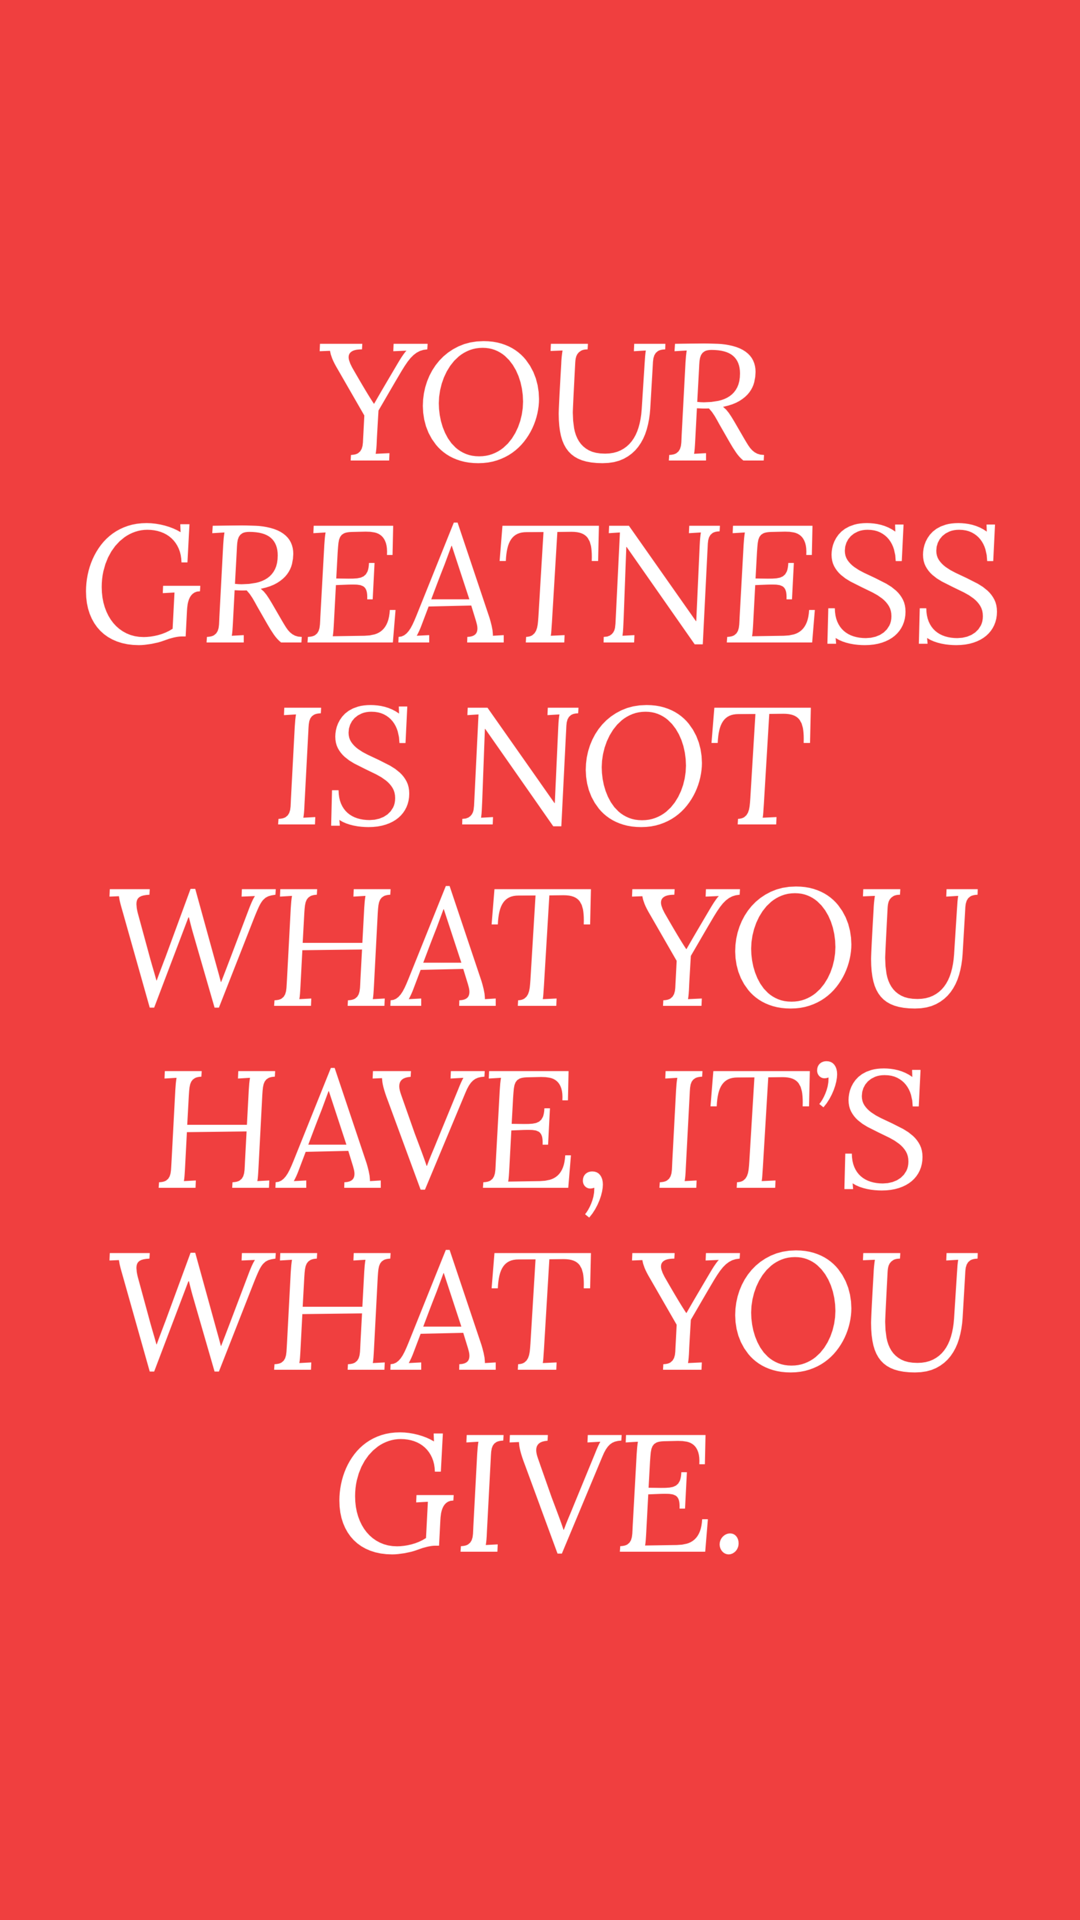 Quotes about giving back, charity inspiration, how to leave ...